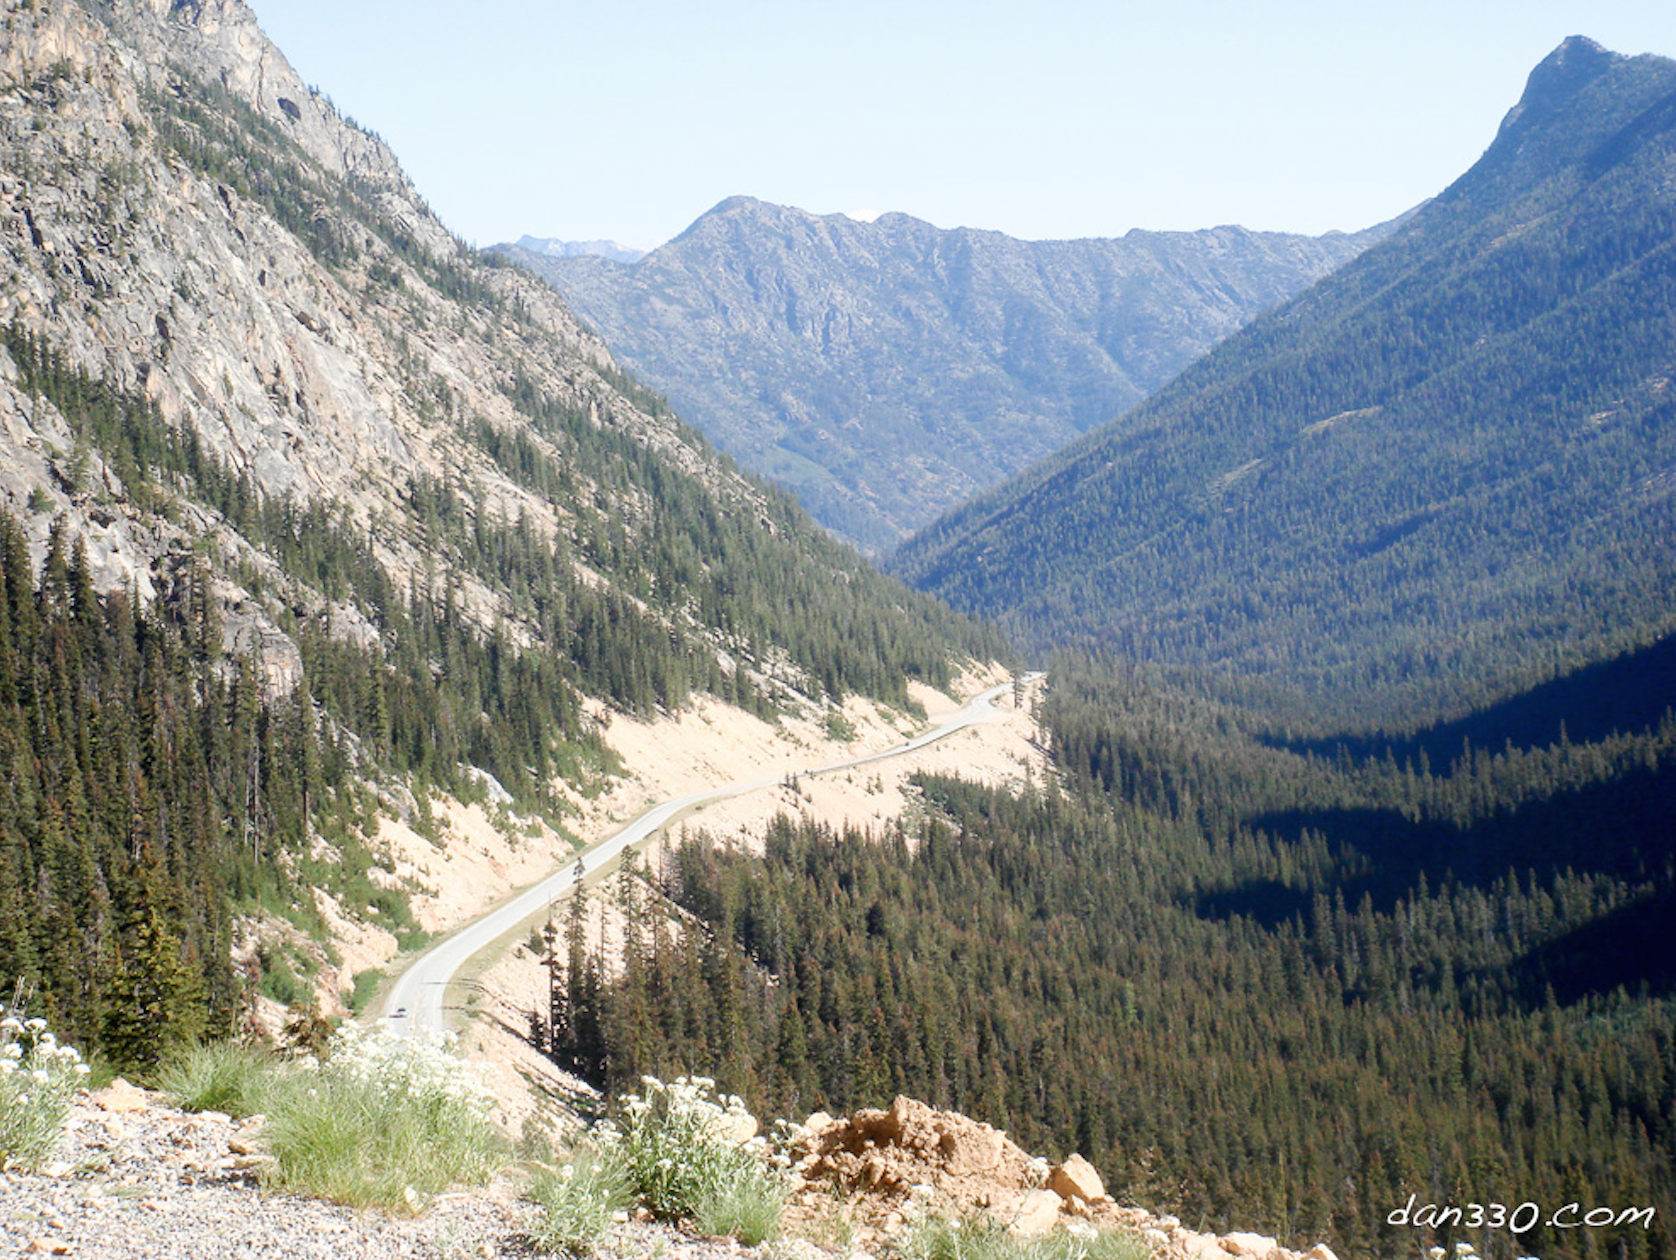 SR - 20 on the east side of the pass